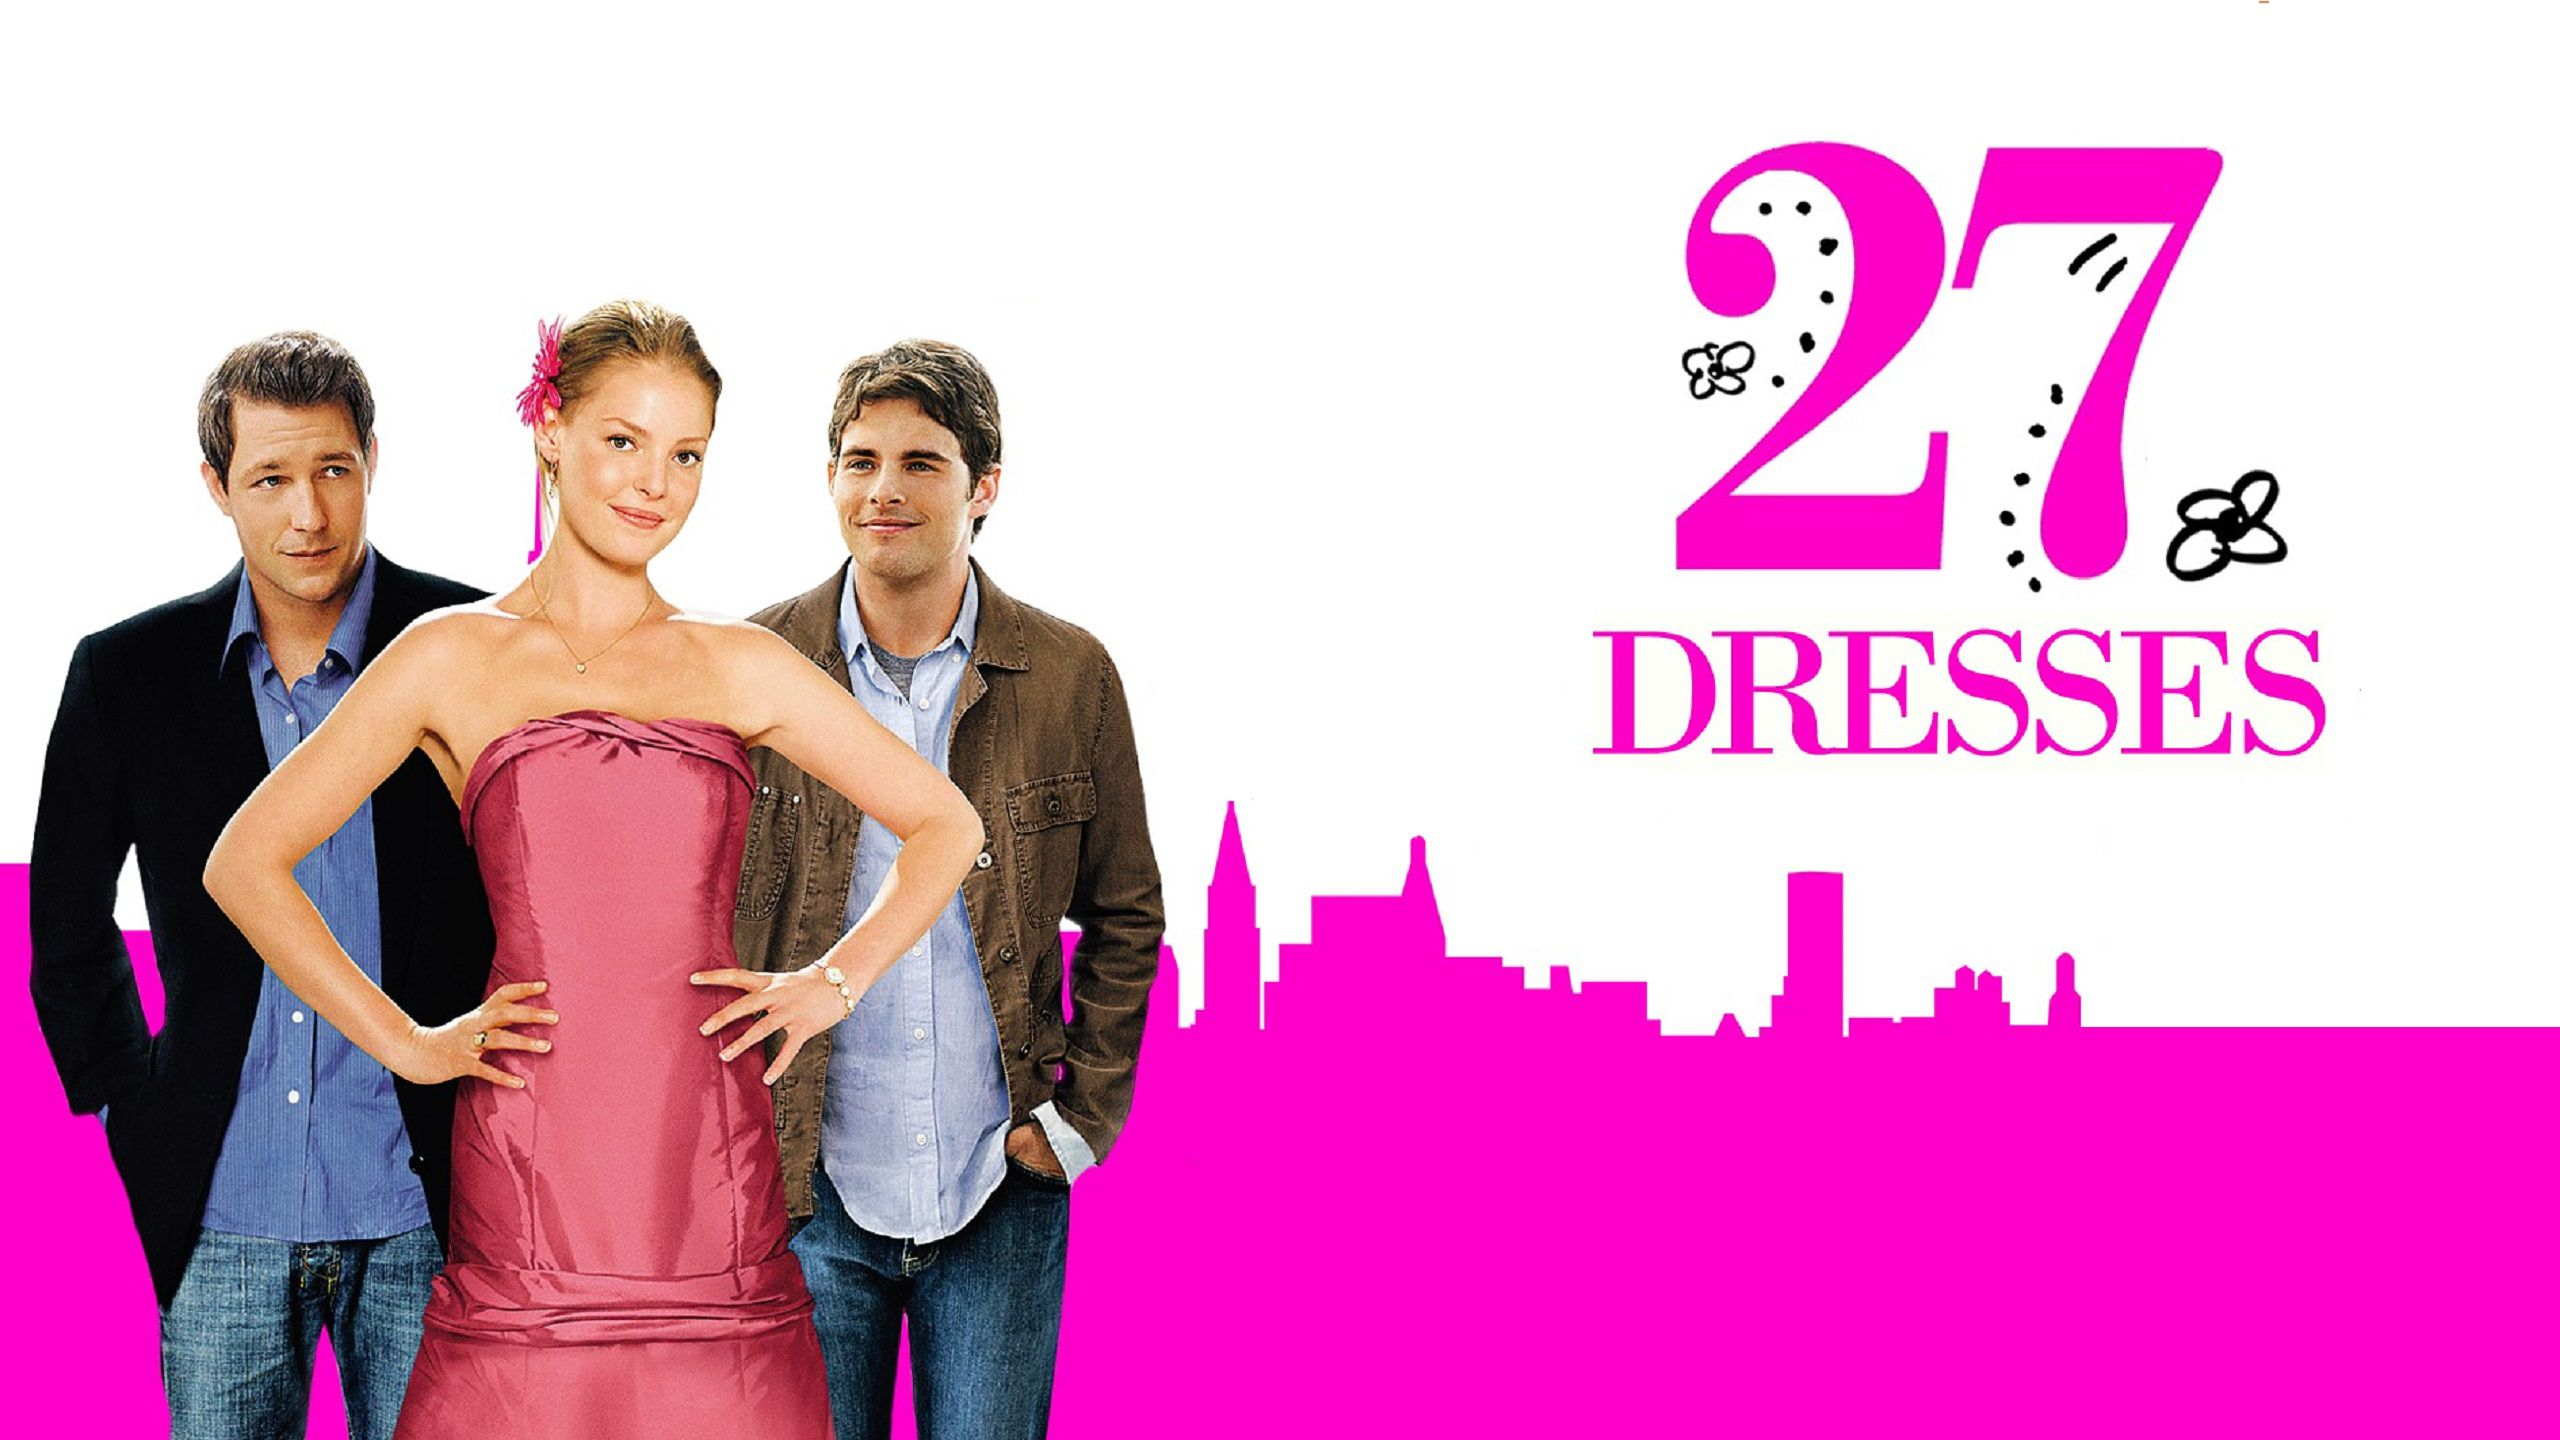 27 volte in bianco - 27 Dresses - wallpaper poster movie collection